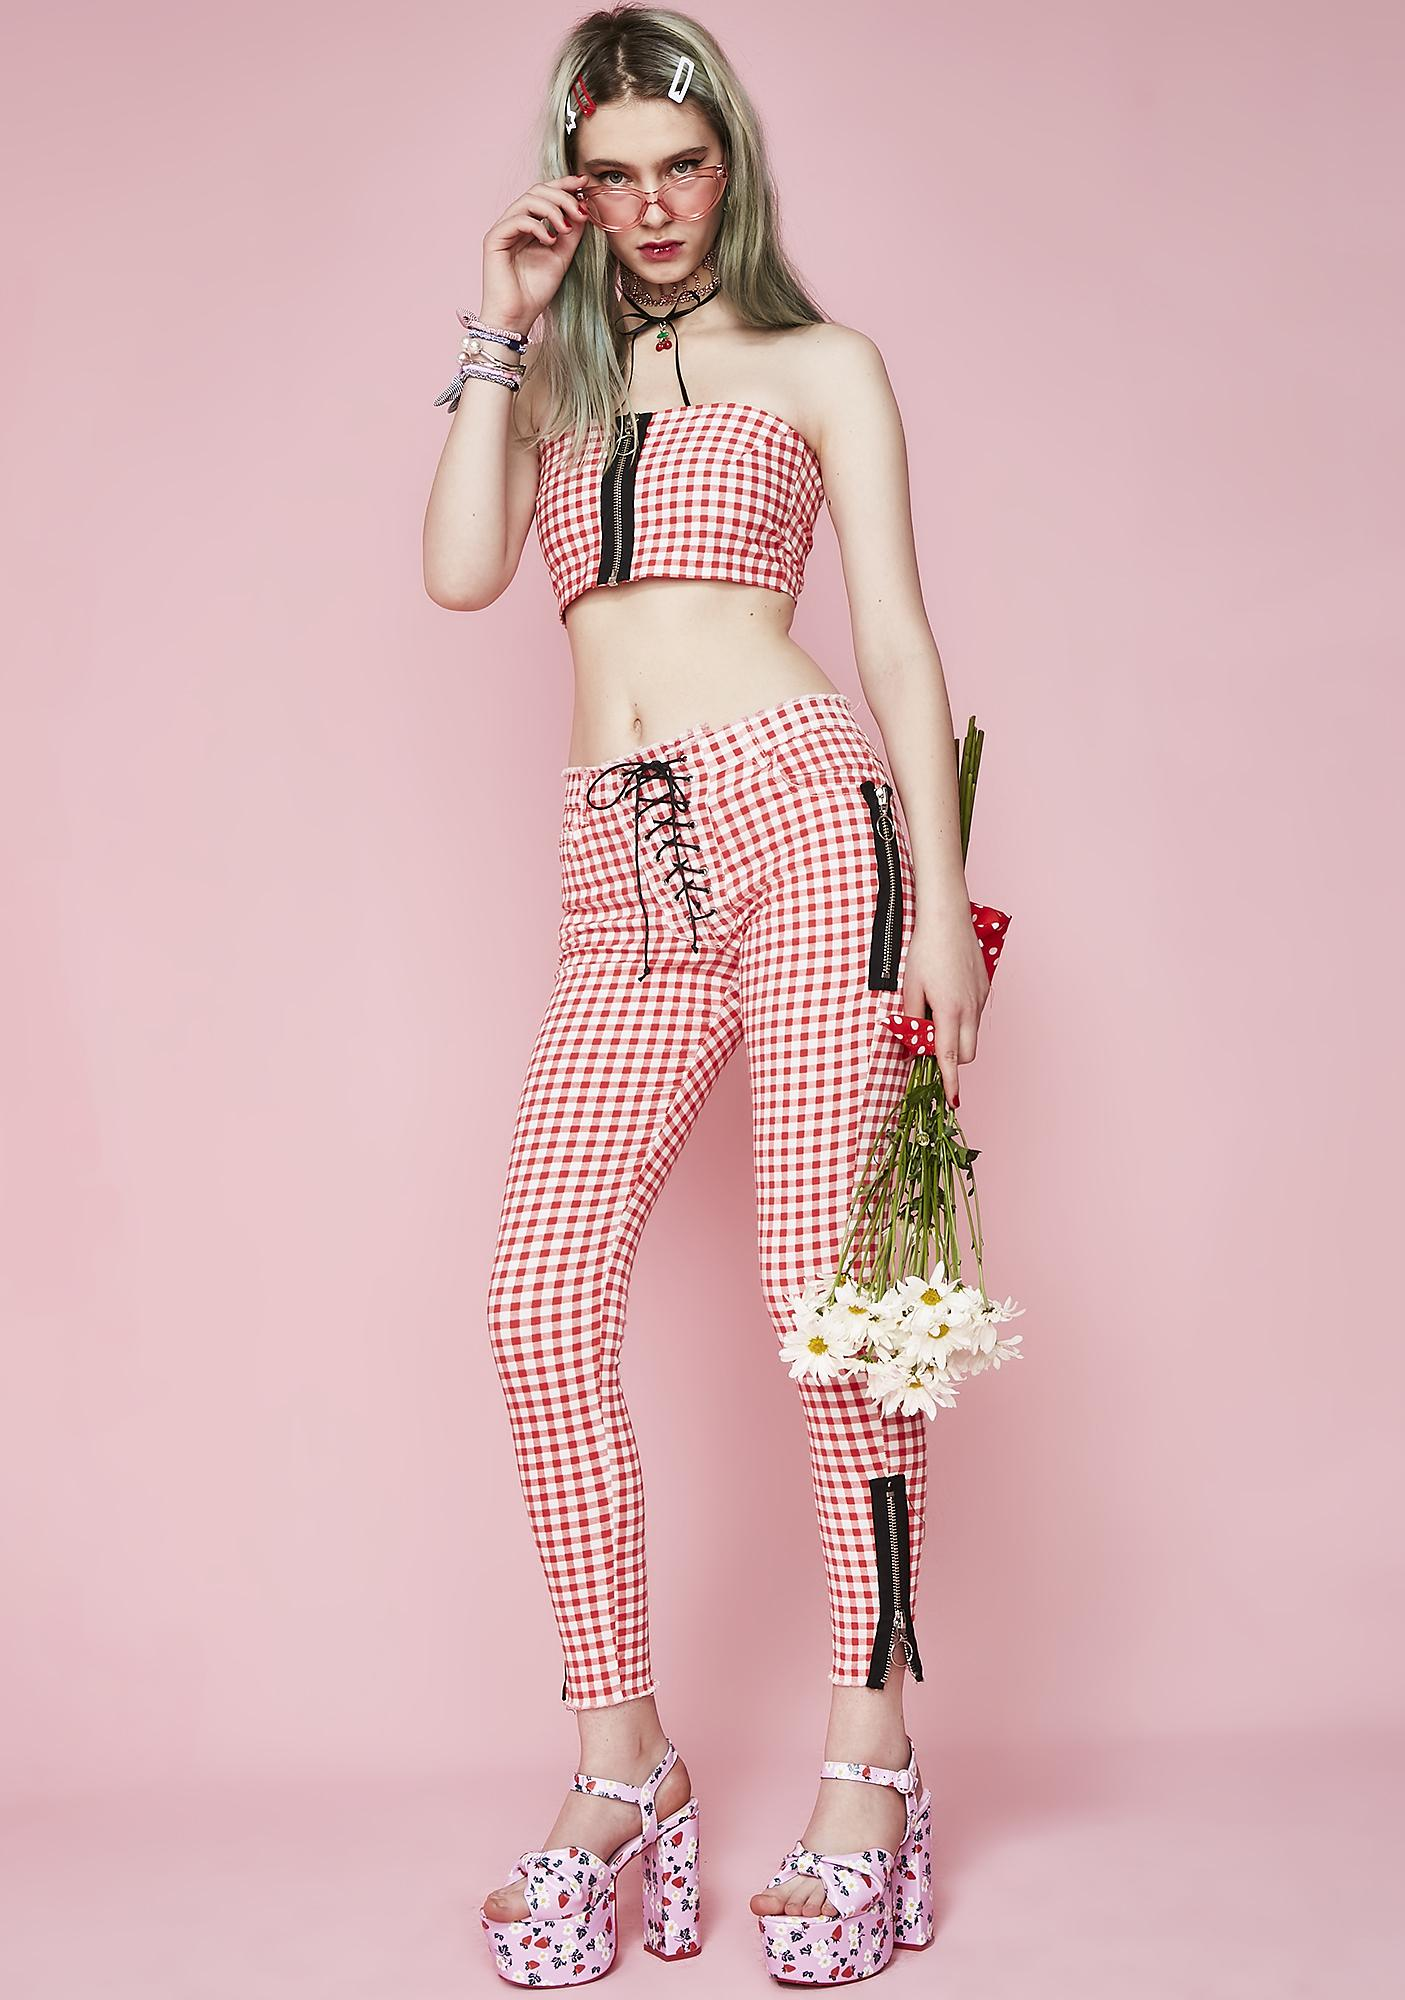 "Not Ur Sweetheart Lace Up Pants<Button Class=""Price It Clicked Process Validation Passed"" Id=""Pricebtn"" Style=""Display: None;""></Button> by Sugar Thrillz"